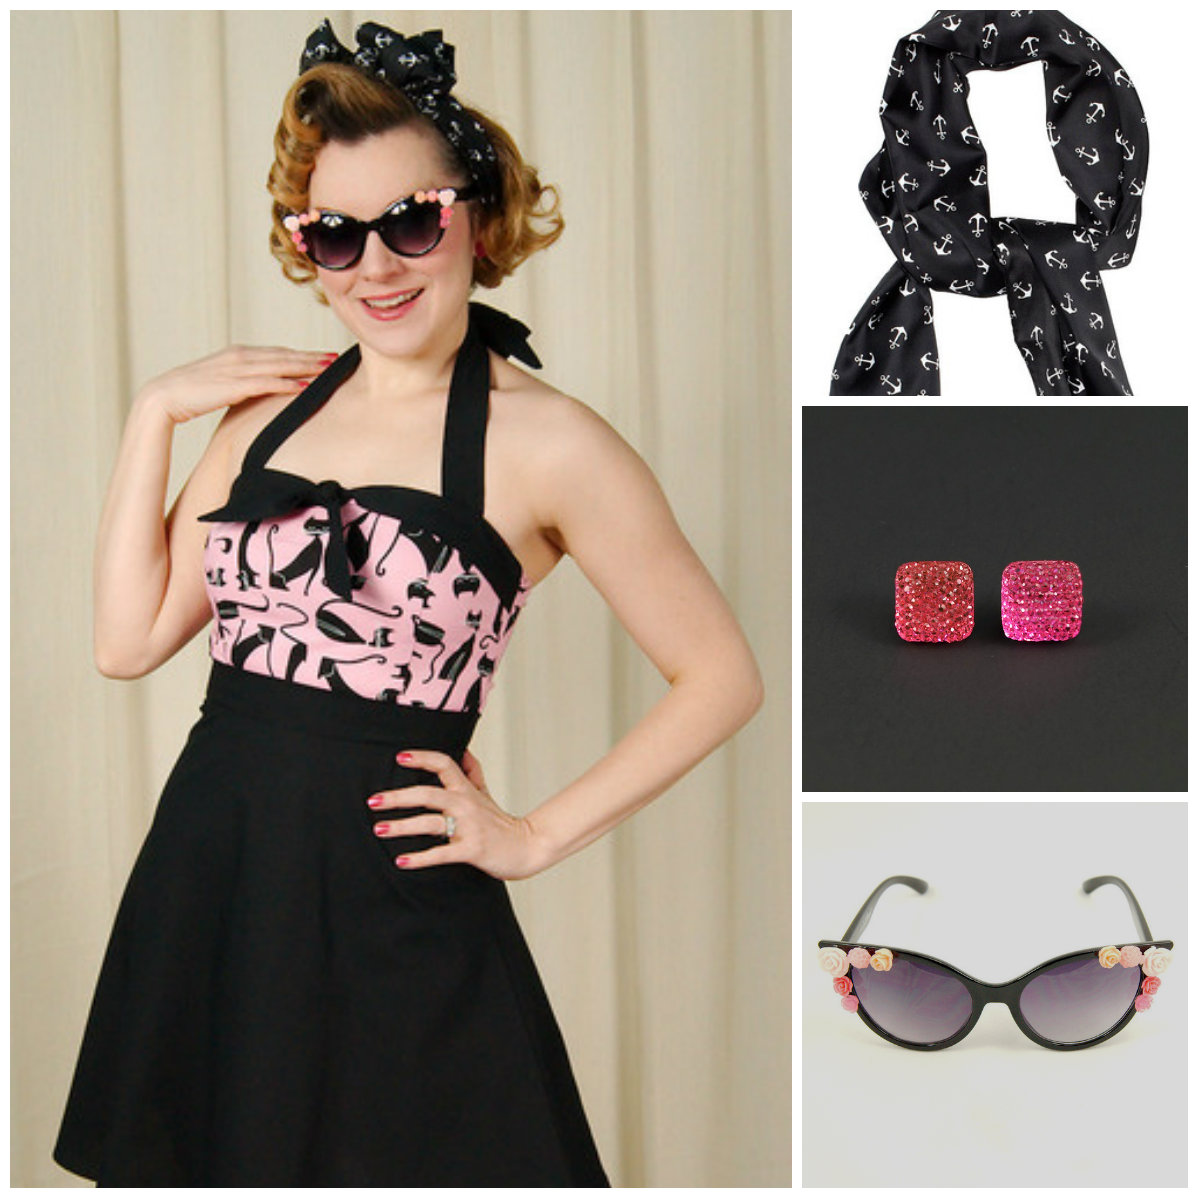 Cats on Pink Matey dress by Mode Merr paired with Bad Girl Anchor Scarf Sash, Pink Sparkle earrings and Lola Flowers cat eye sunglasses.